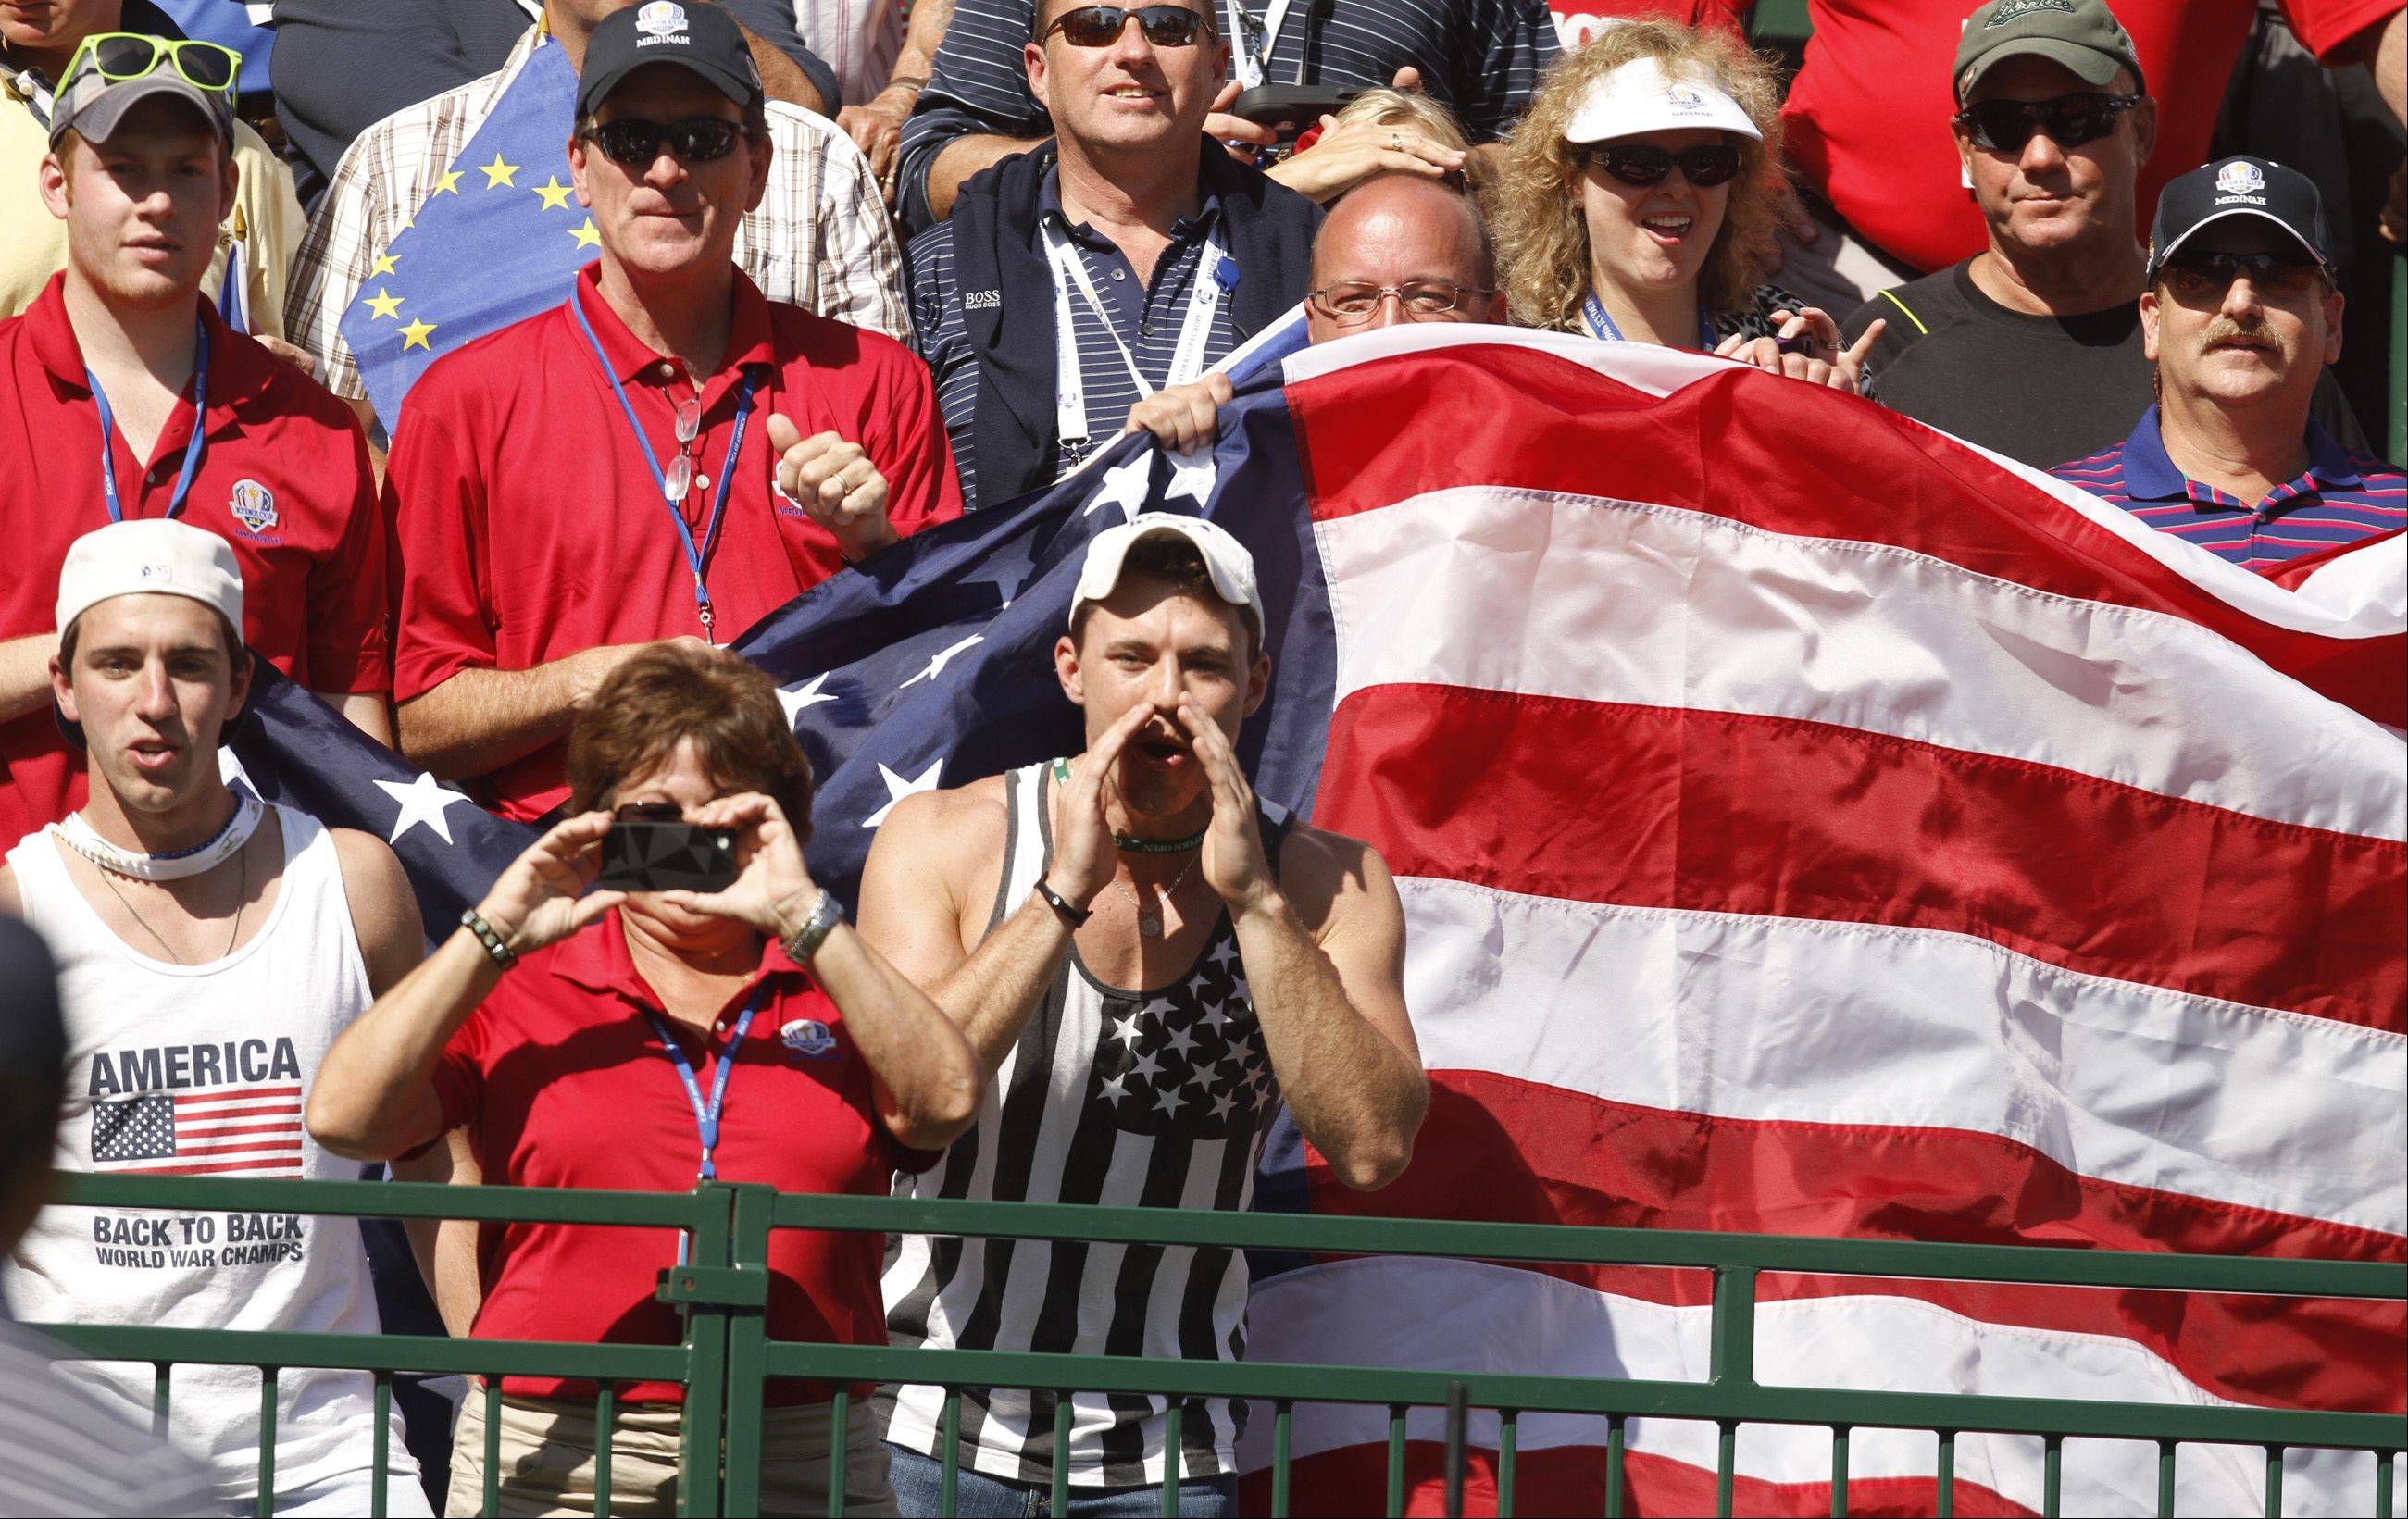 Patriotic fans scream for their teams during the Saturday afternoon Ryder Cup matches at Medinah County Club. Players and national media have praised the Medinah crowds for their sportsmanship and enthusiasm.